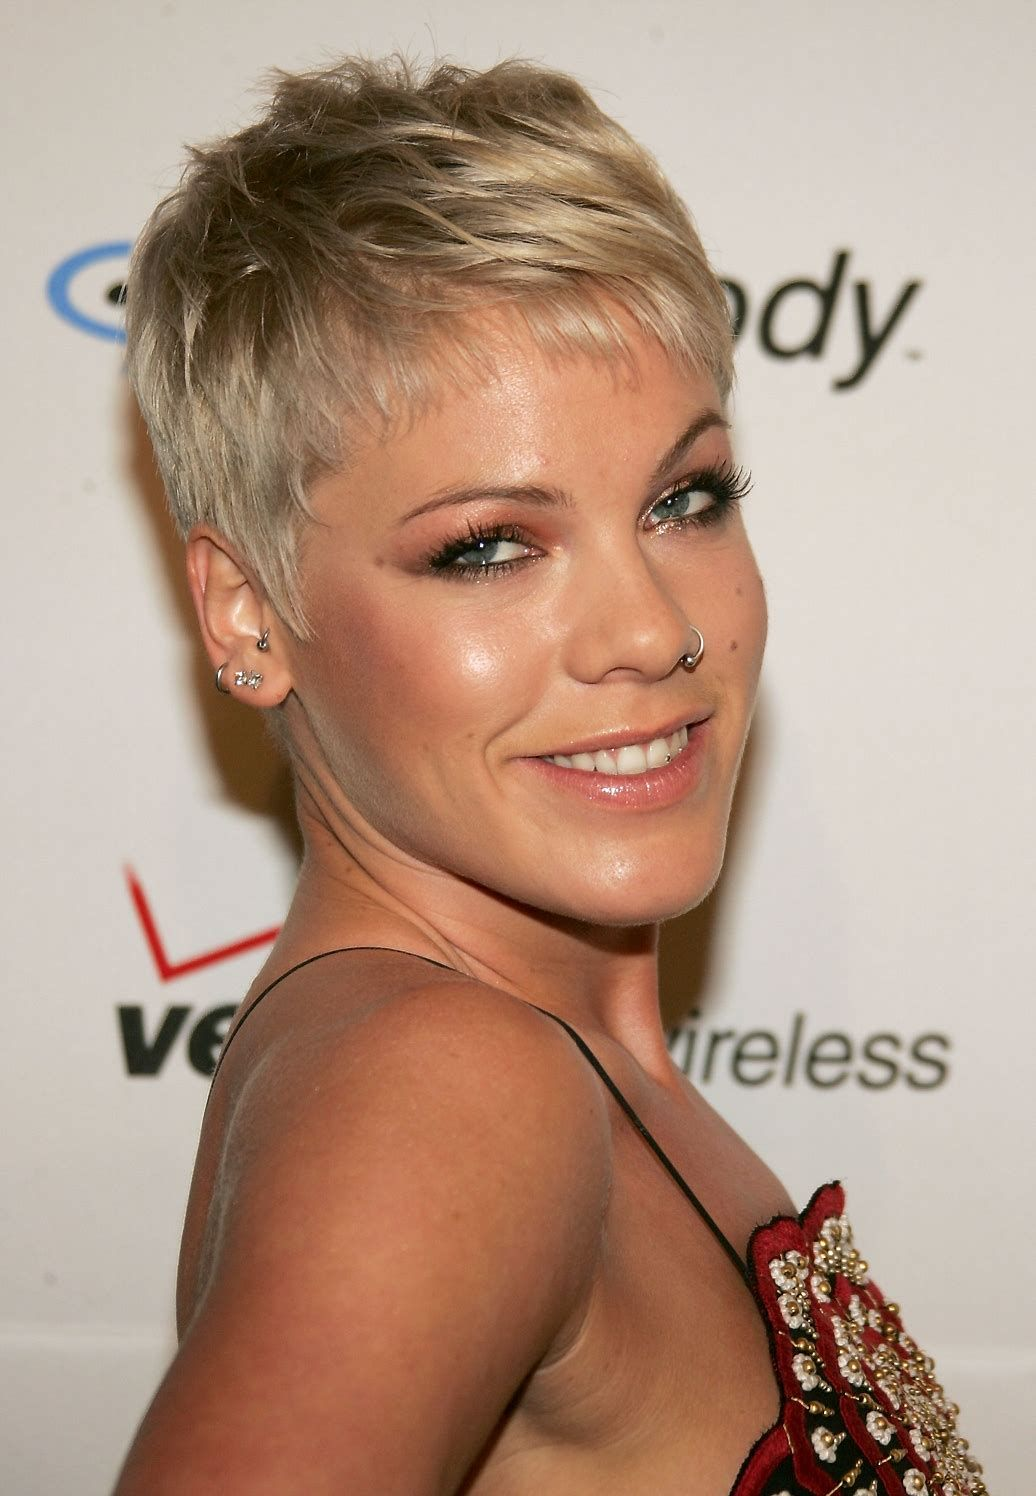 Image Result For Pixie Haircuts For Women Over 50 With Glasses